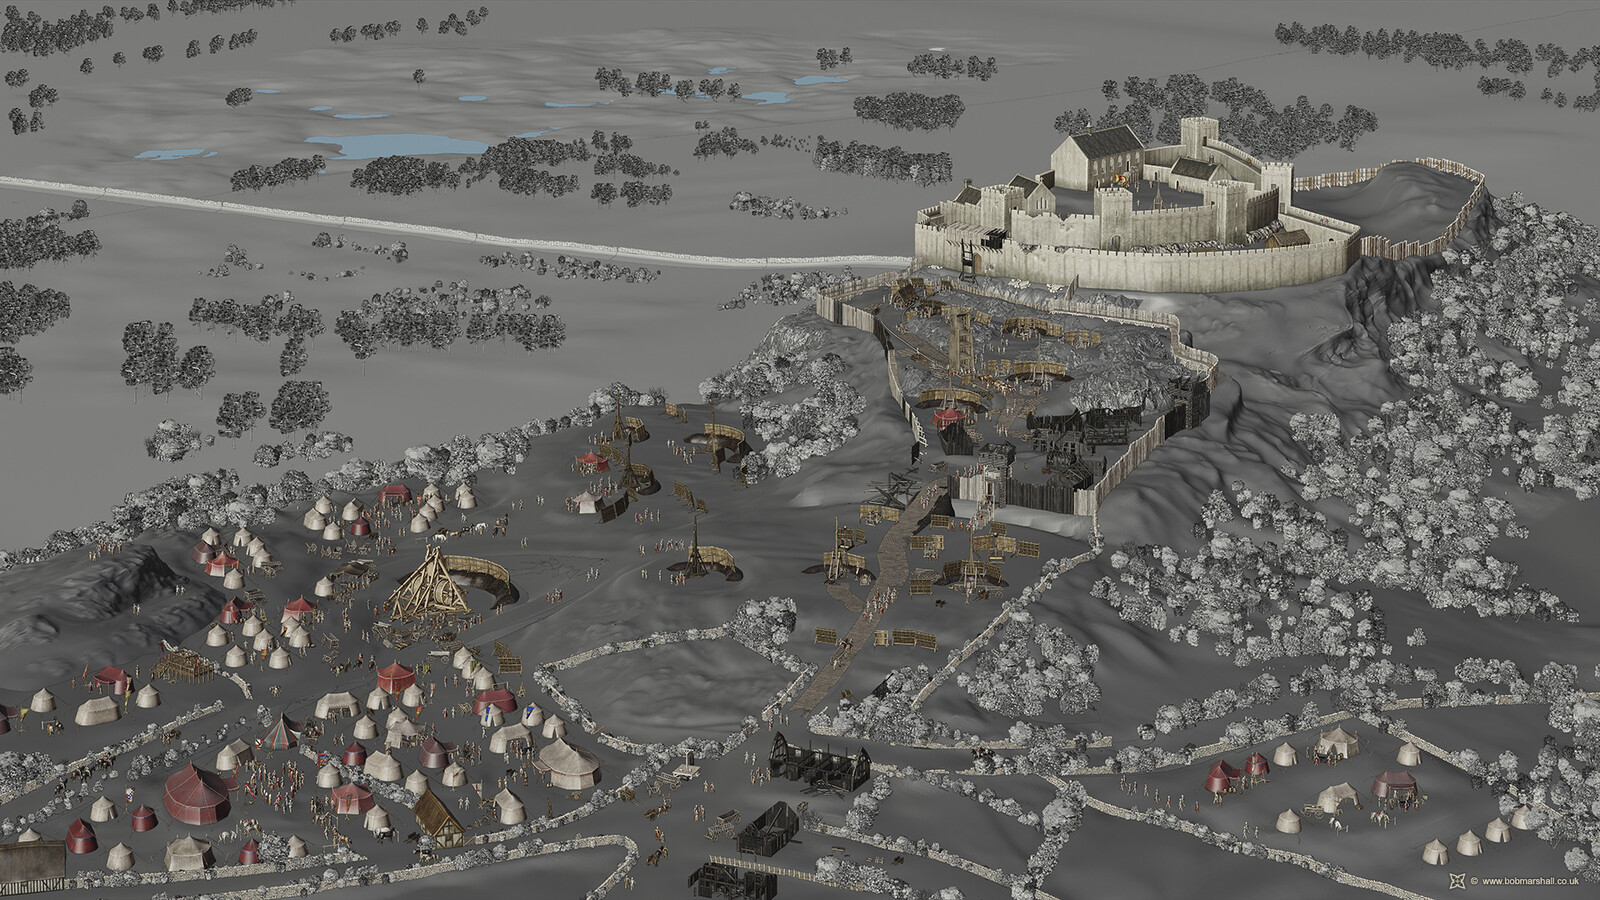 Blender 3D model - Siege of Stirling Castle, 1304